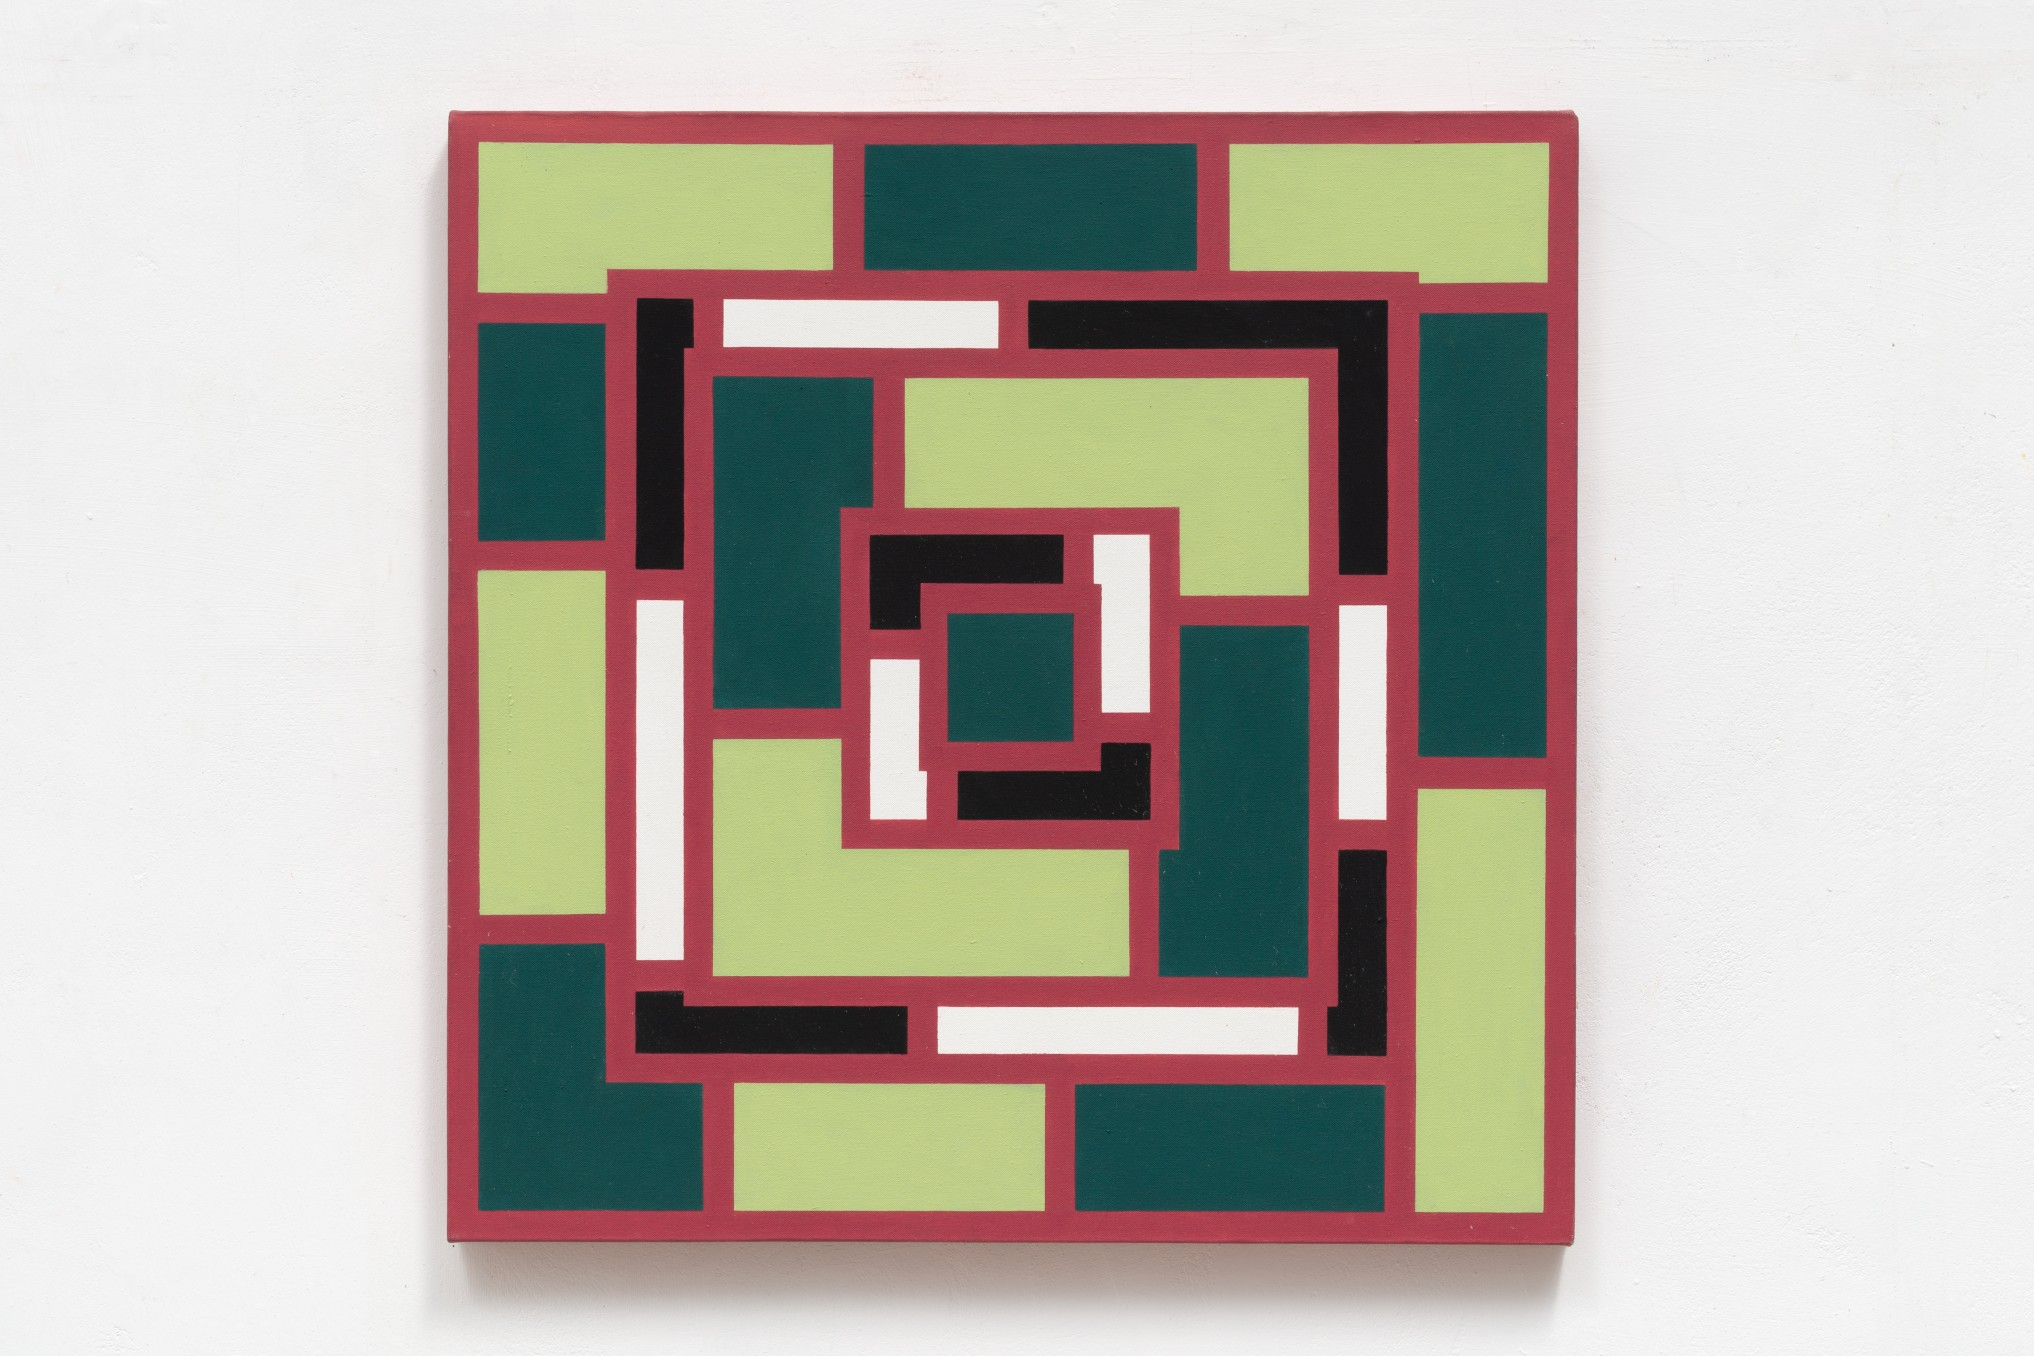 Mary Webb Red and green VI, 1974 Oil on canvas 74 x 74 cm 29 1/8 x 29 1/8 in